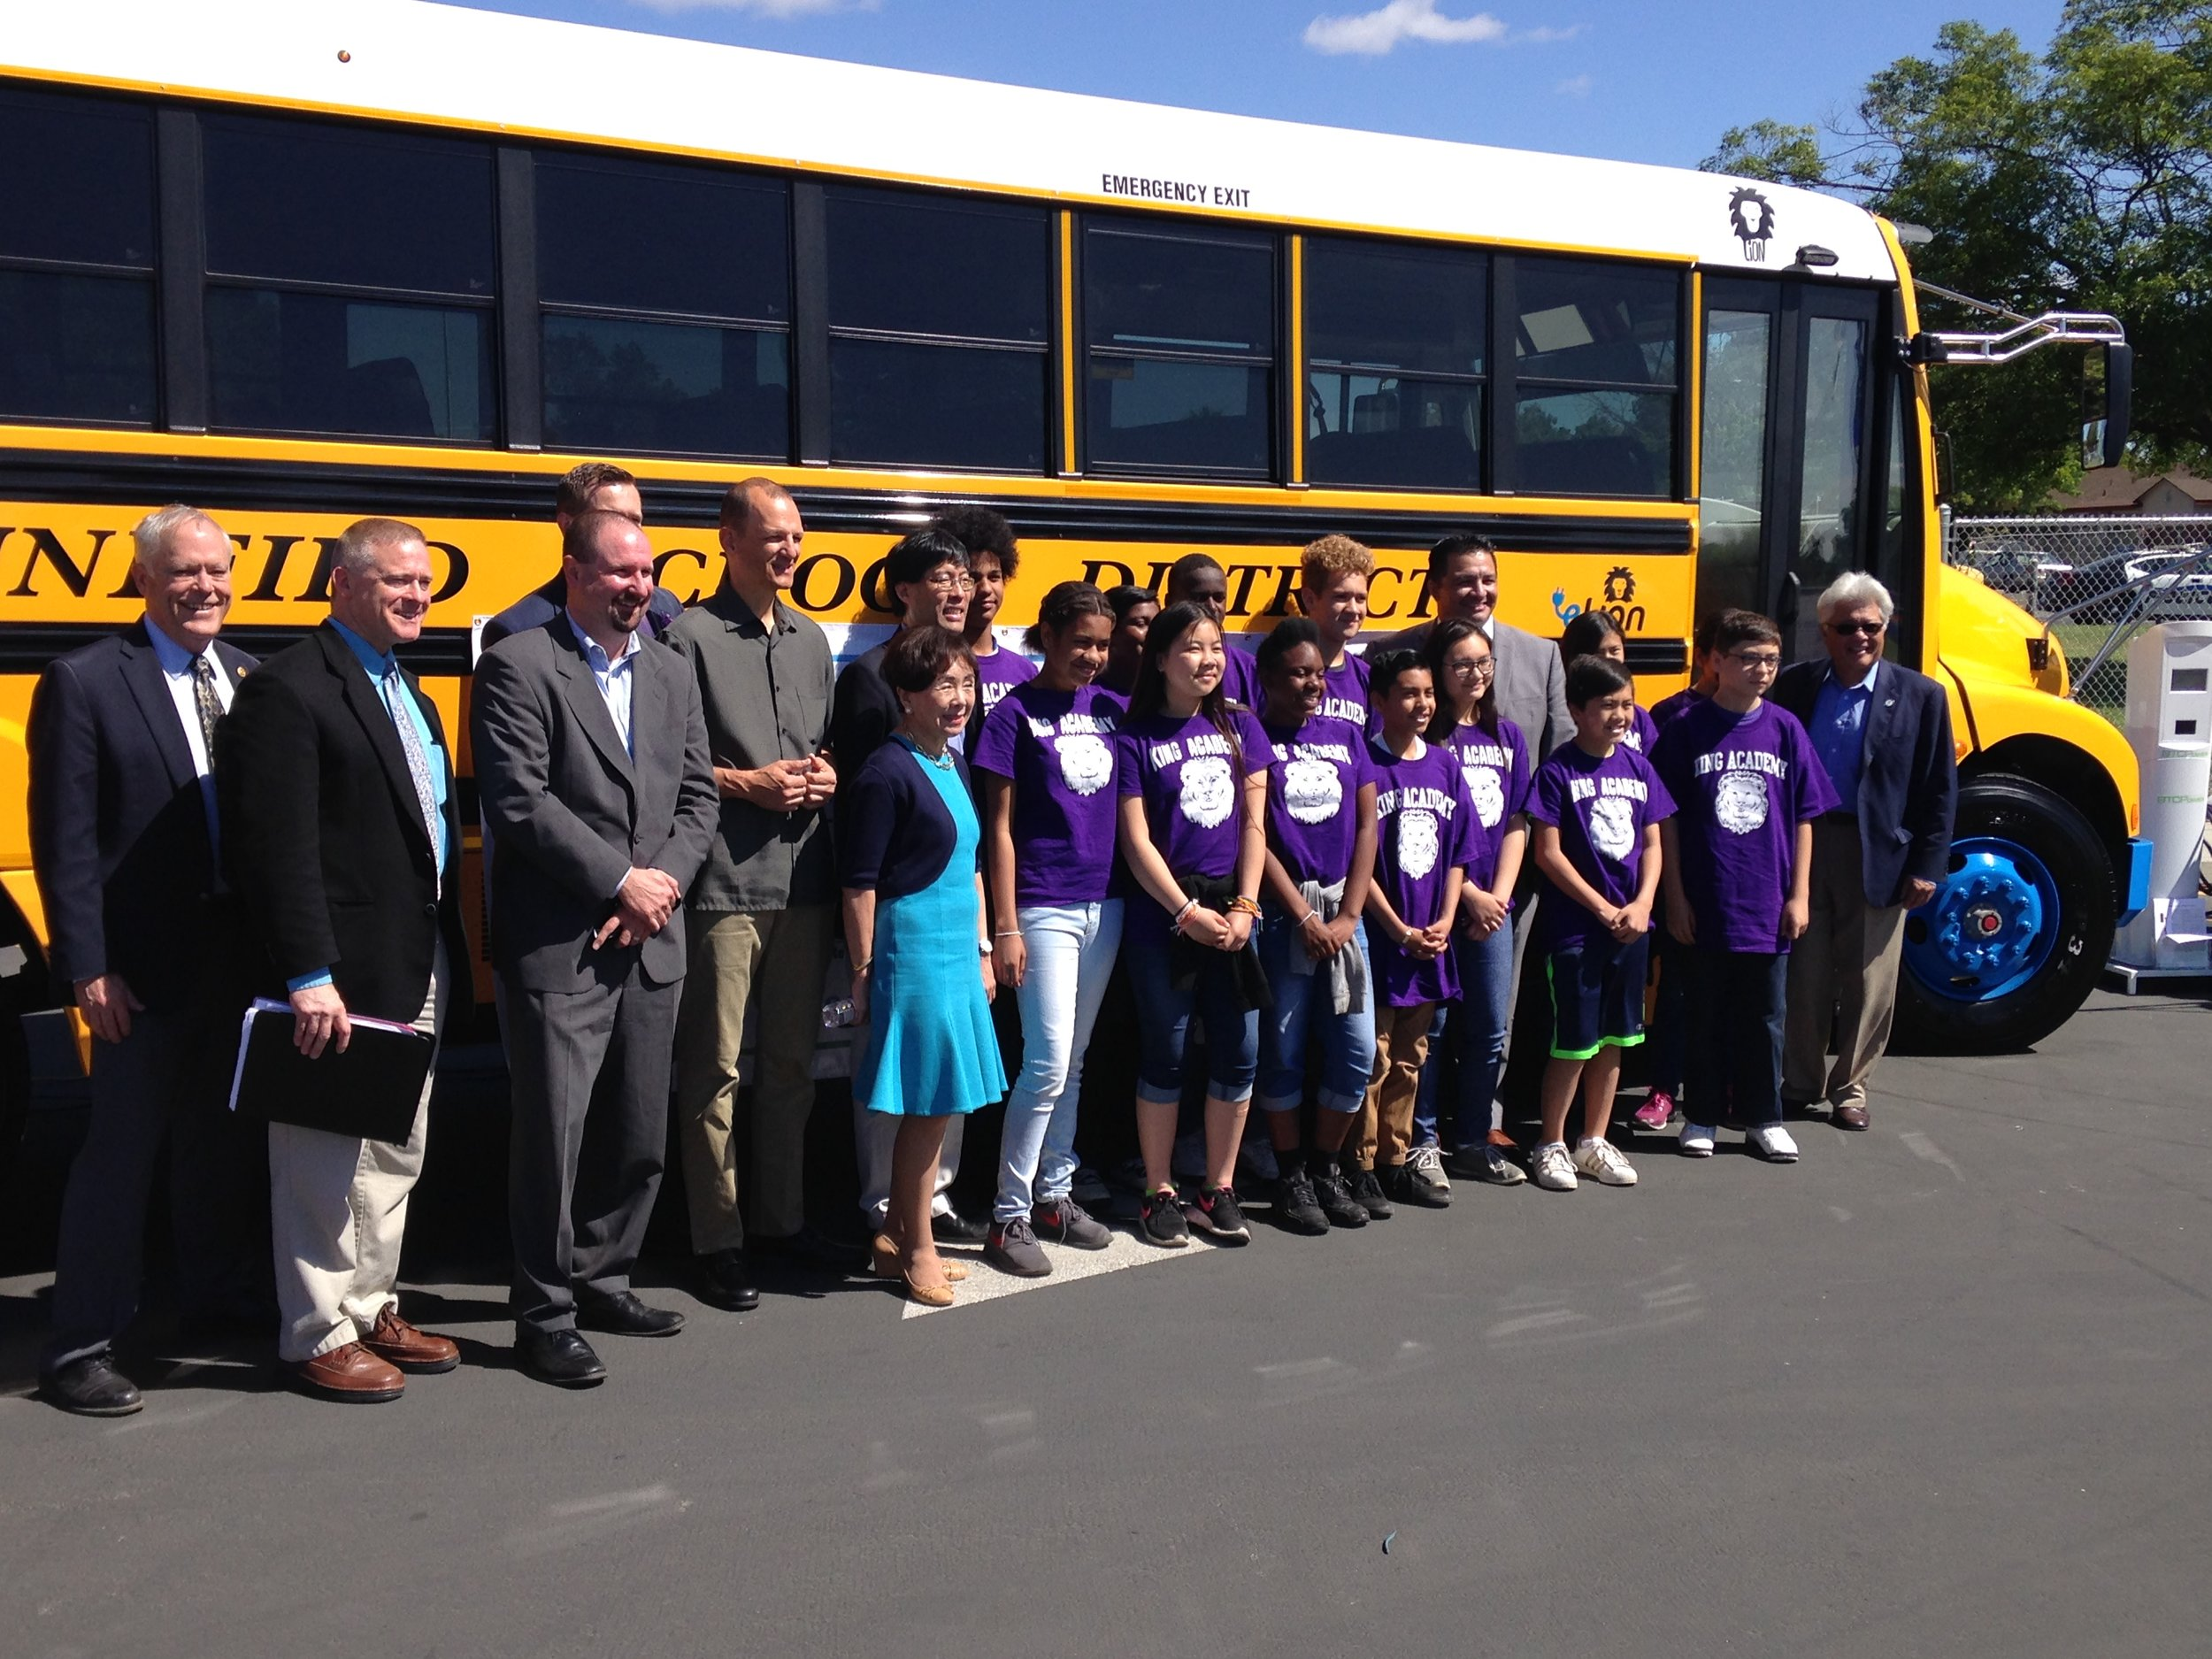 School children and administrators with electric bus